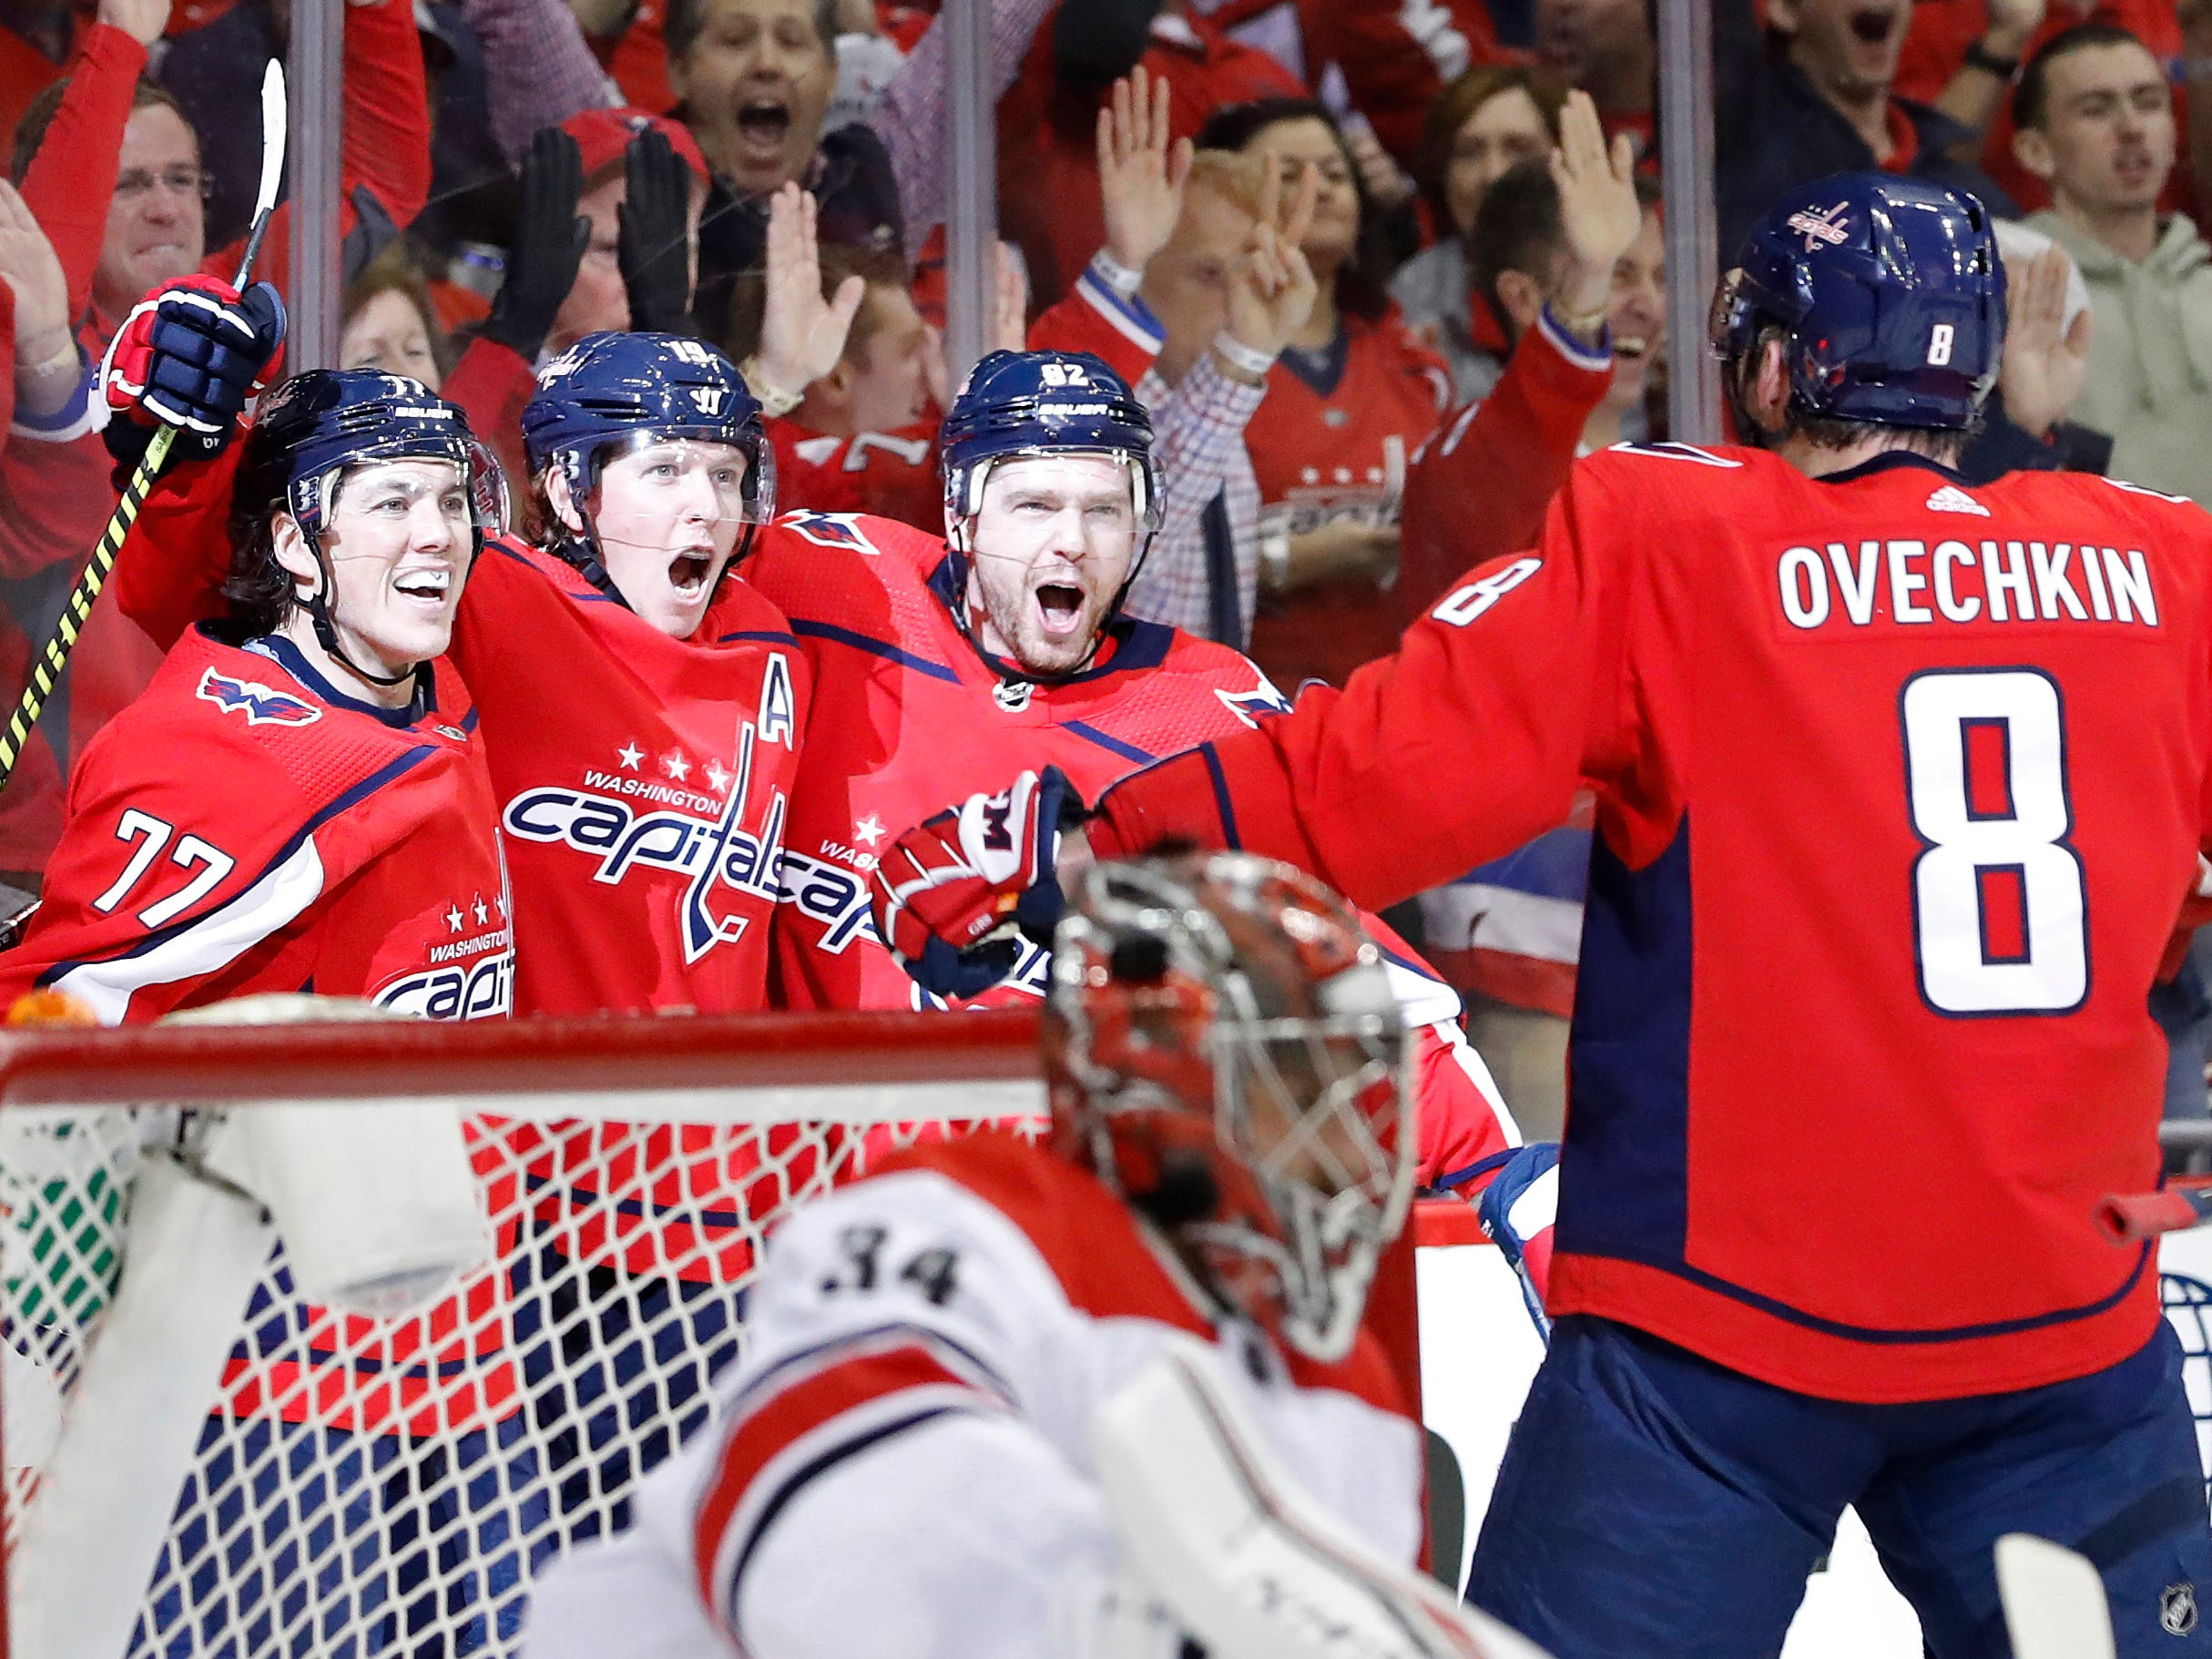 First round: Washington Capitals center Nicklas Backstrom (center) celebrates with teammates after scoring a goal against the Carolina Hurricanes in the first period in Game 1 at Capital One Arena. The Capitals won, 4-2.